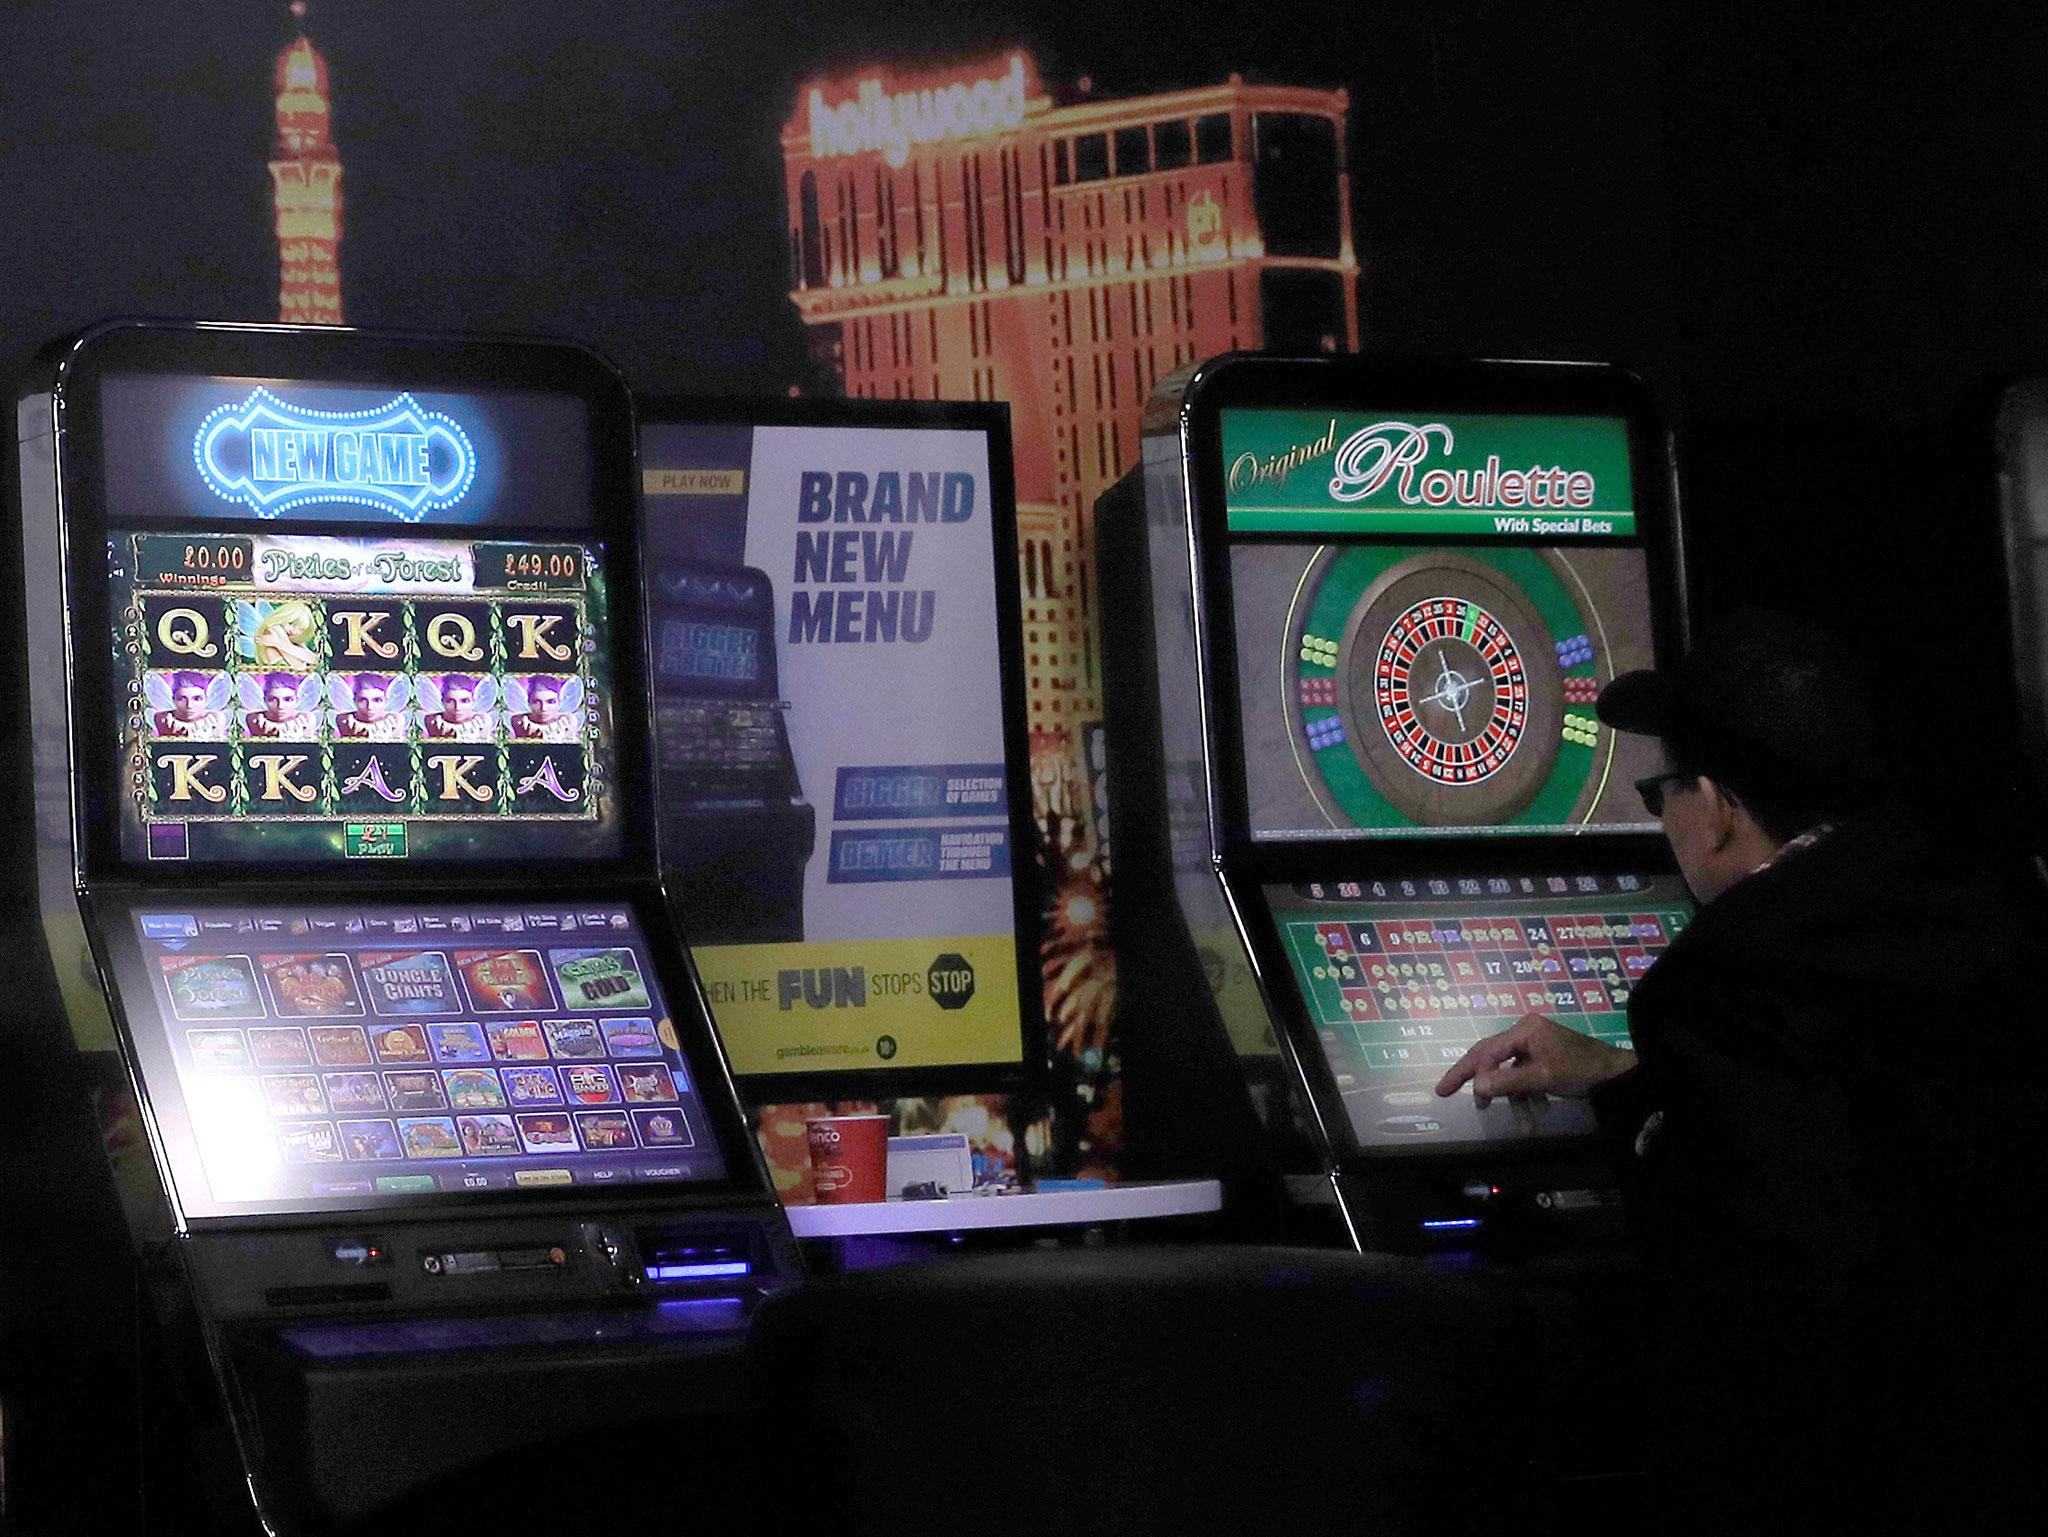 Fixed odds betting terminals addiction dog football predictions betting